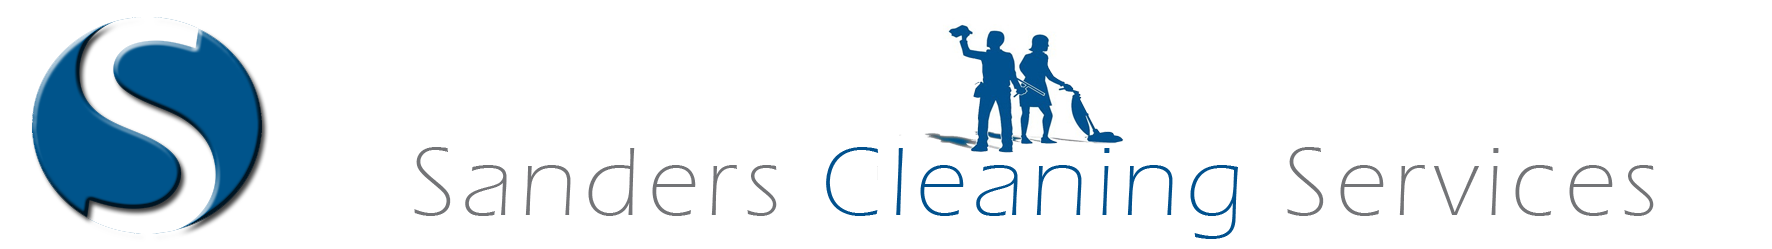 Sanders Cleaning Services